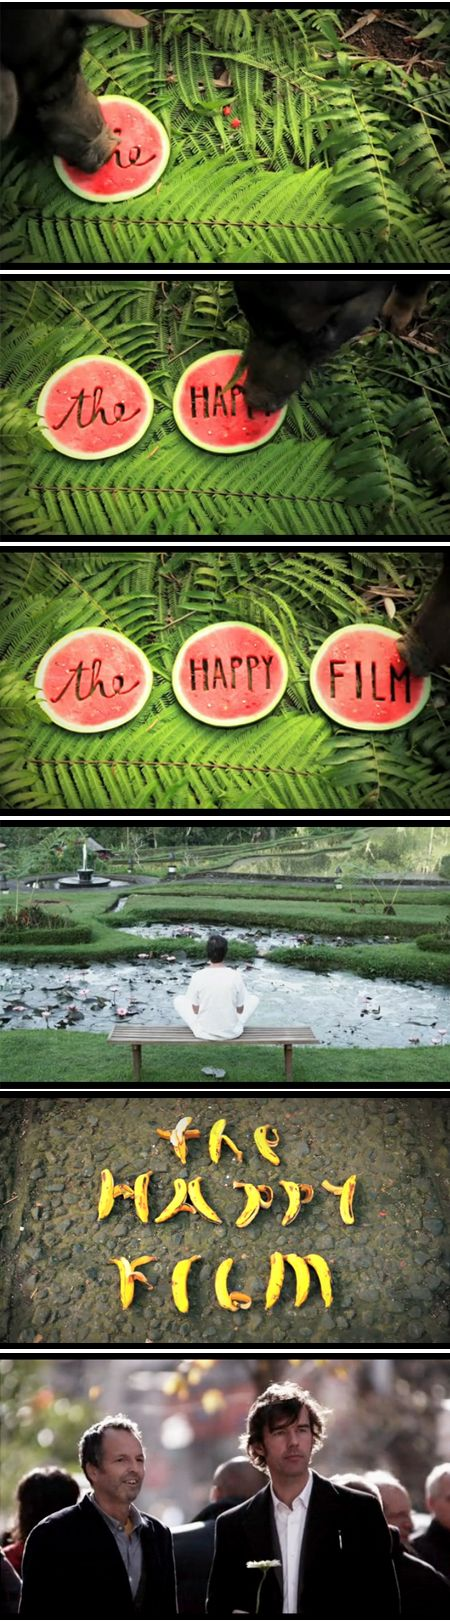 The Happy Film - very neat film screenings with interactive info graphs and installations.